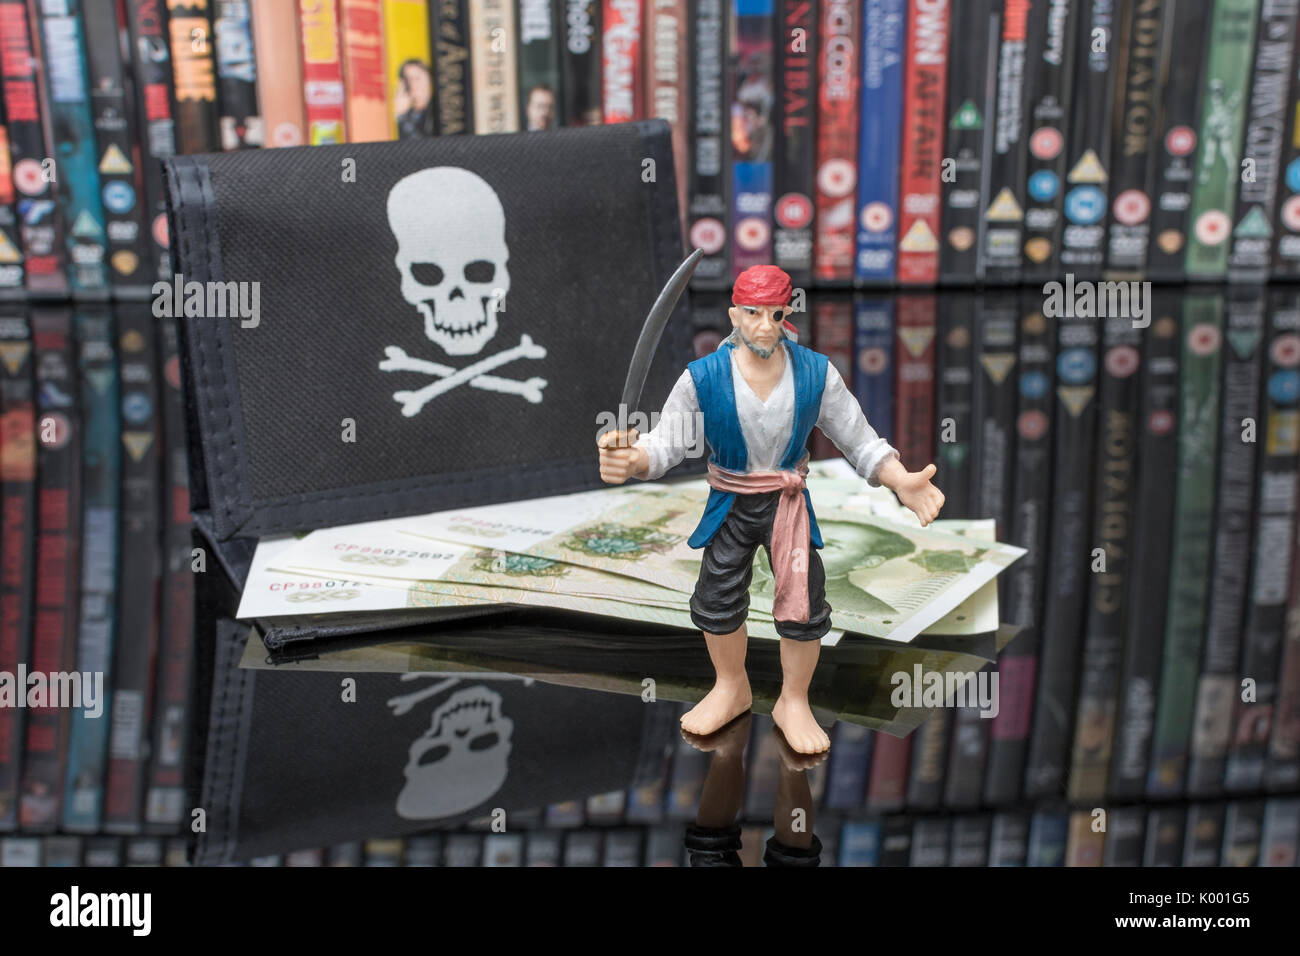 Sword wielding toy pirate standing beside stacks of DVDs (Digital Versatile Disc) - metaphor software piracy, Chinese counterfeit goods & IP theft. - Stock Image